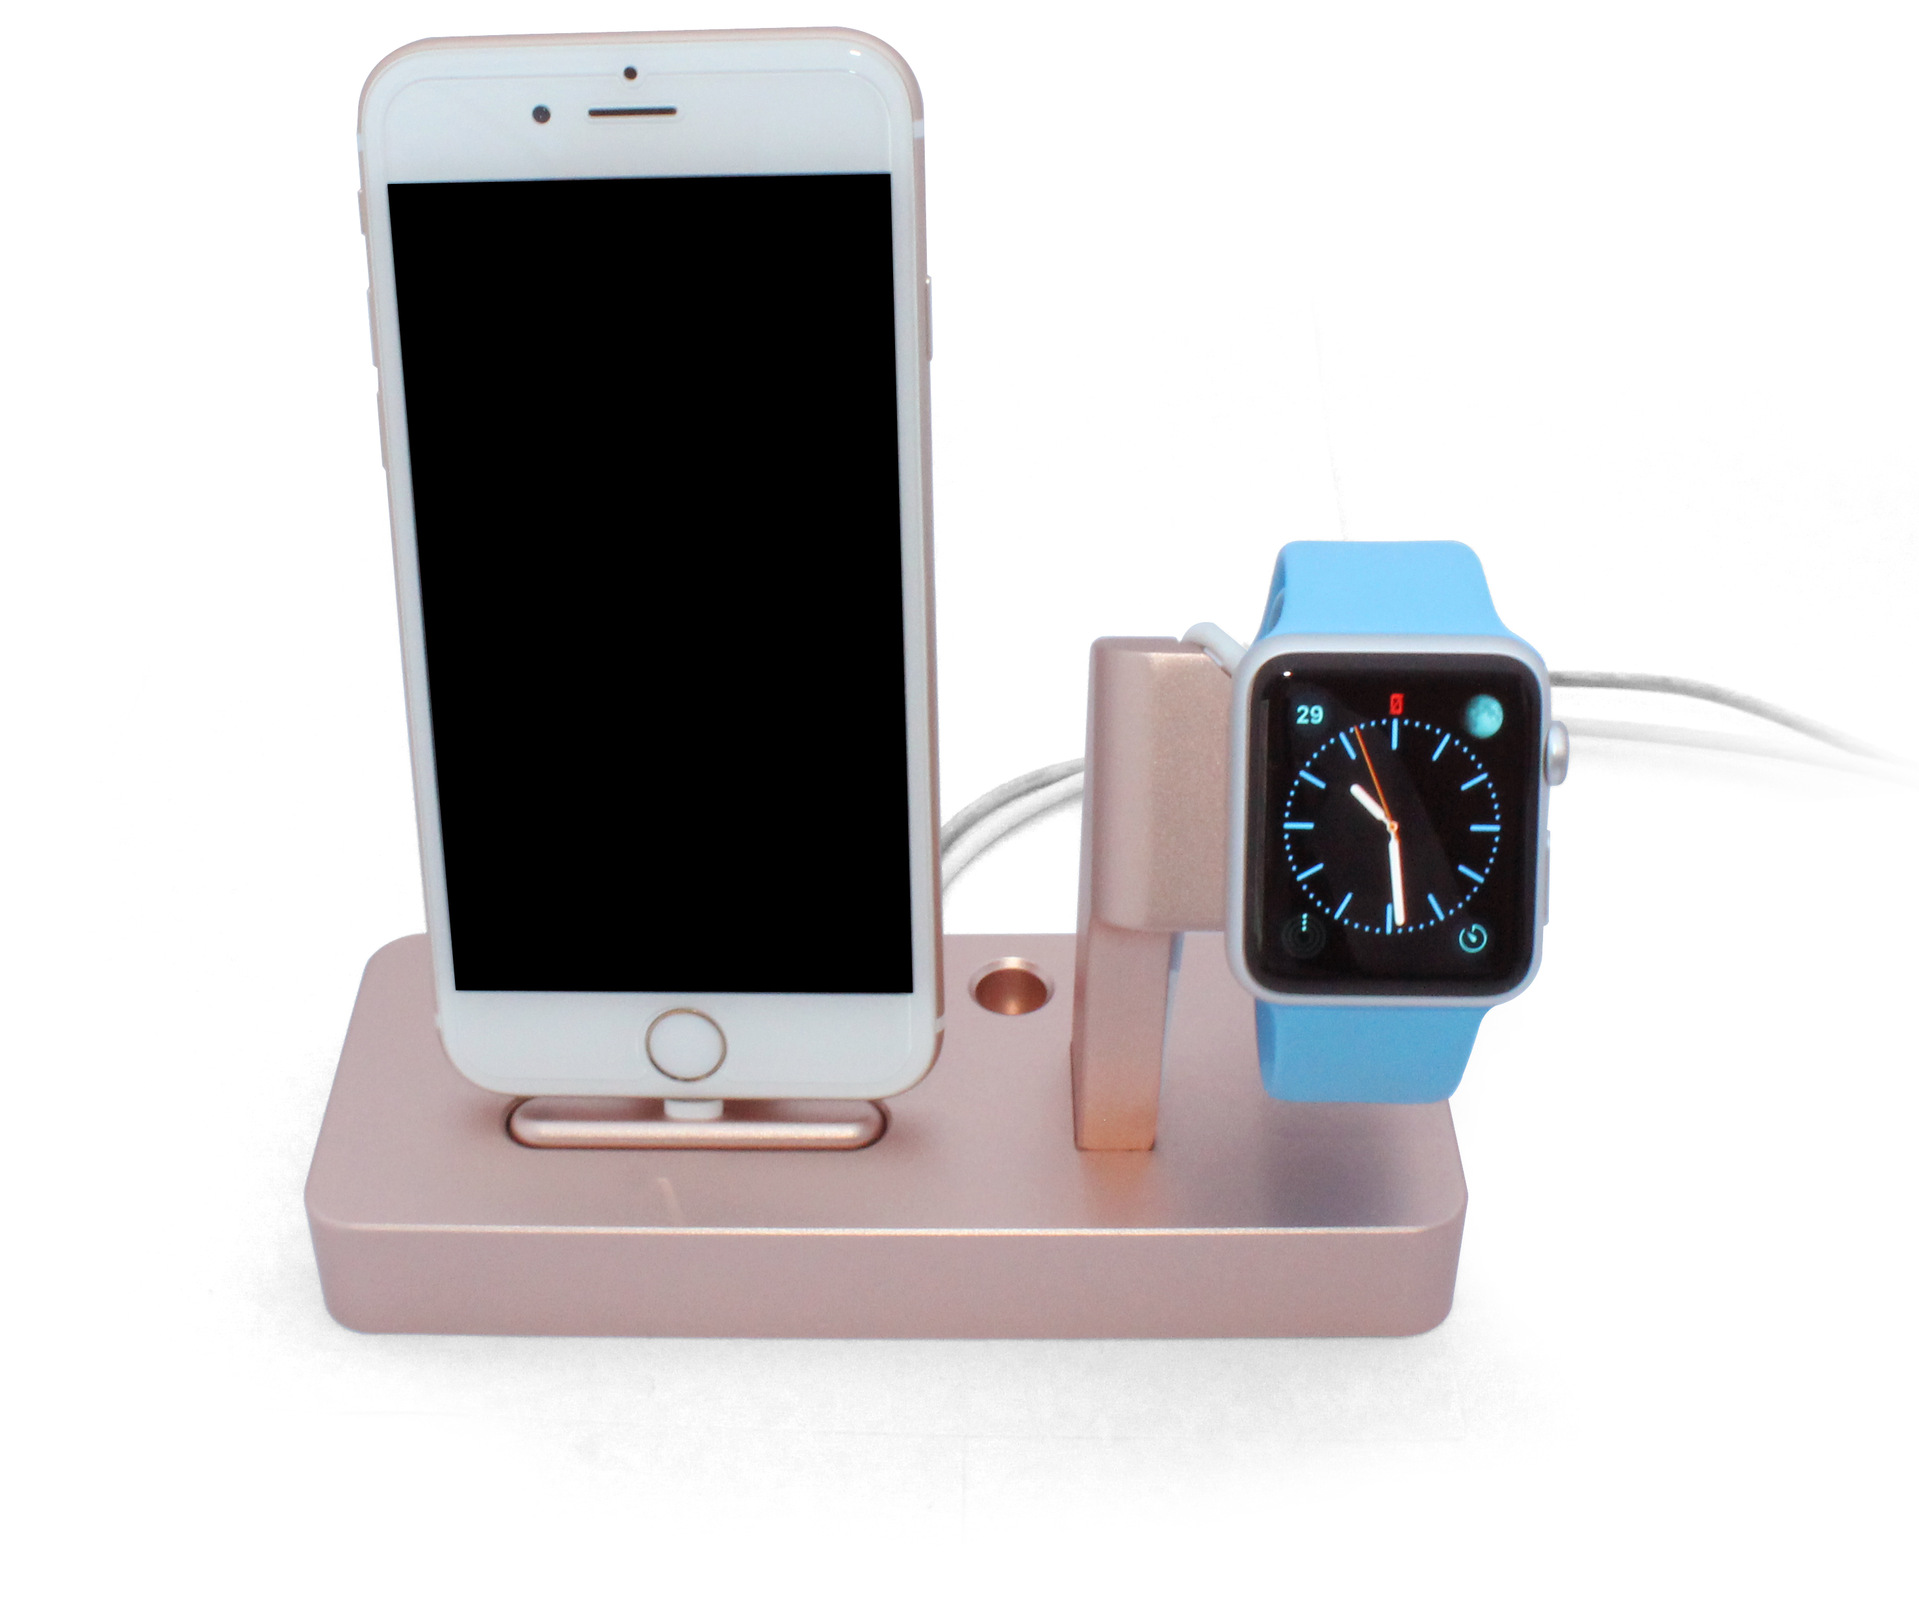 Multi Function Aluminium Le Watch Stand Holder Charging Dock Charger Station For Iphone 6 6p Oem Odm Service In Jewelry Packaging Display From